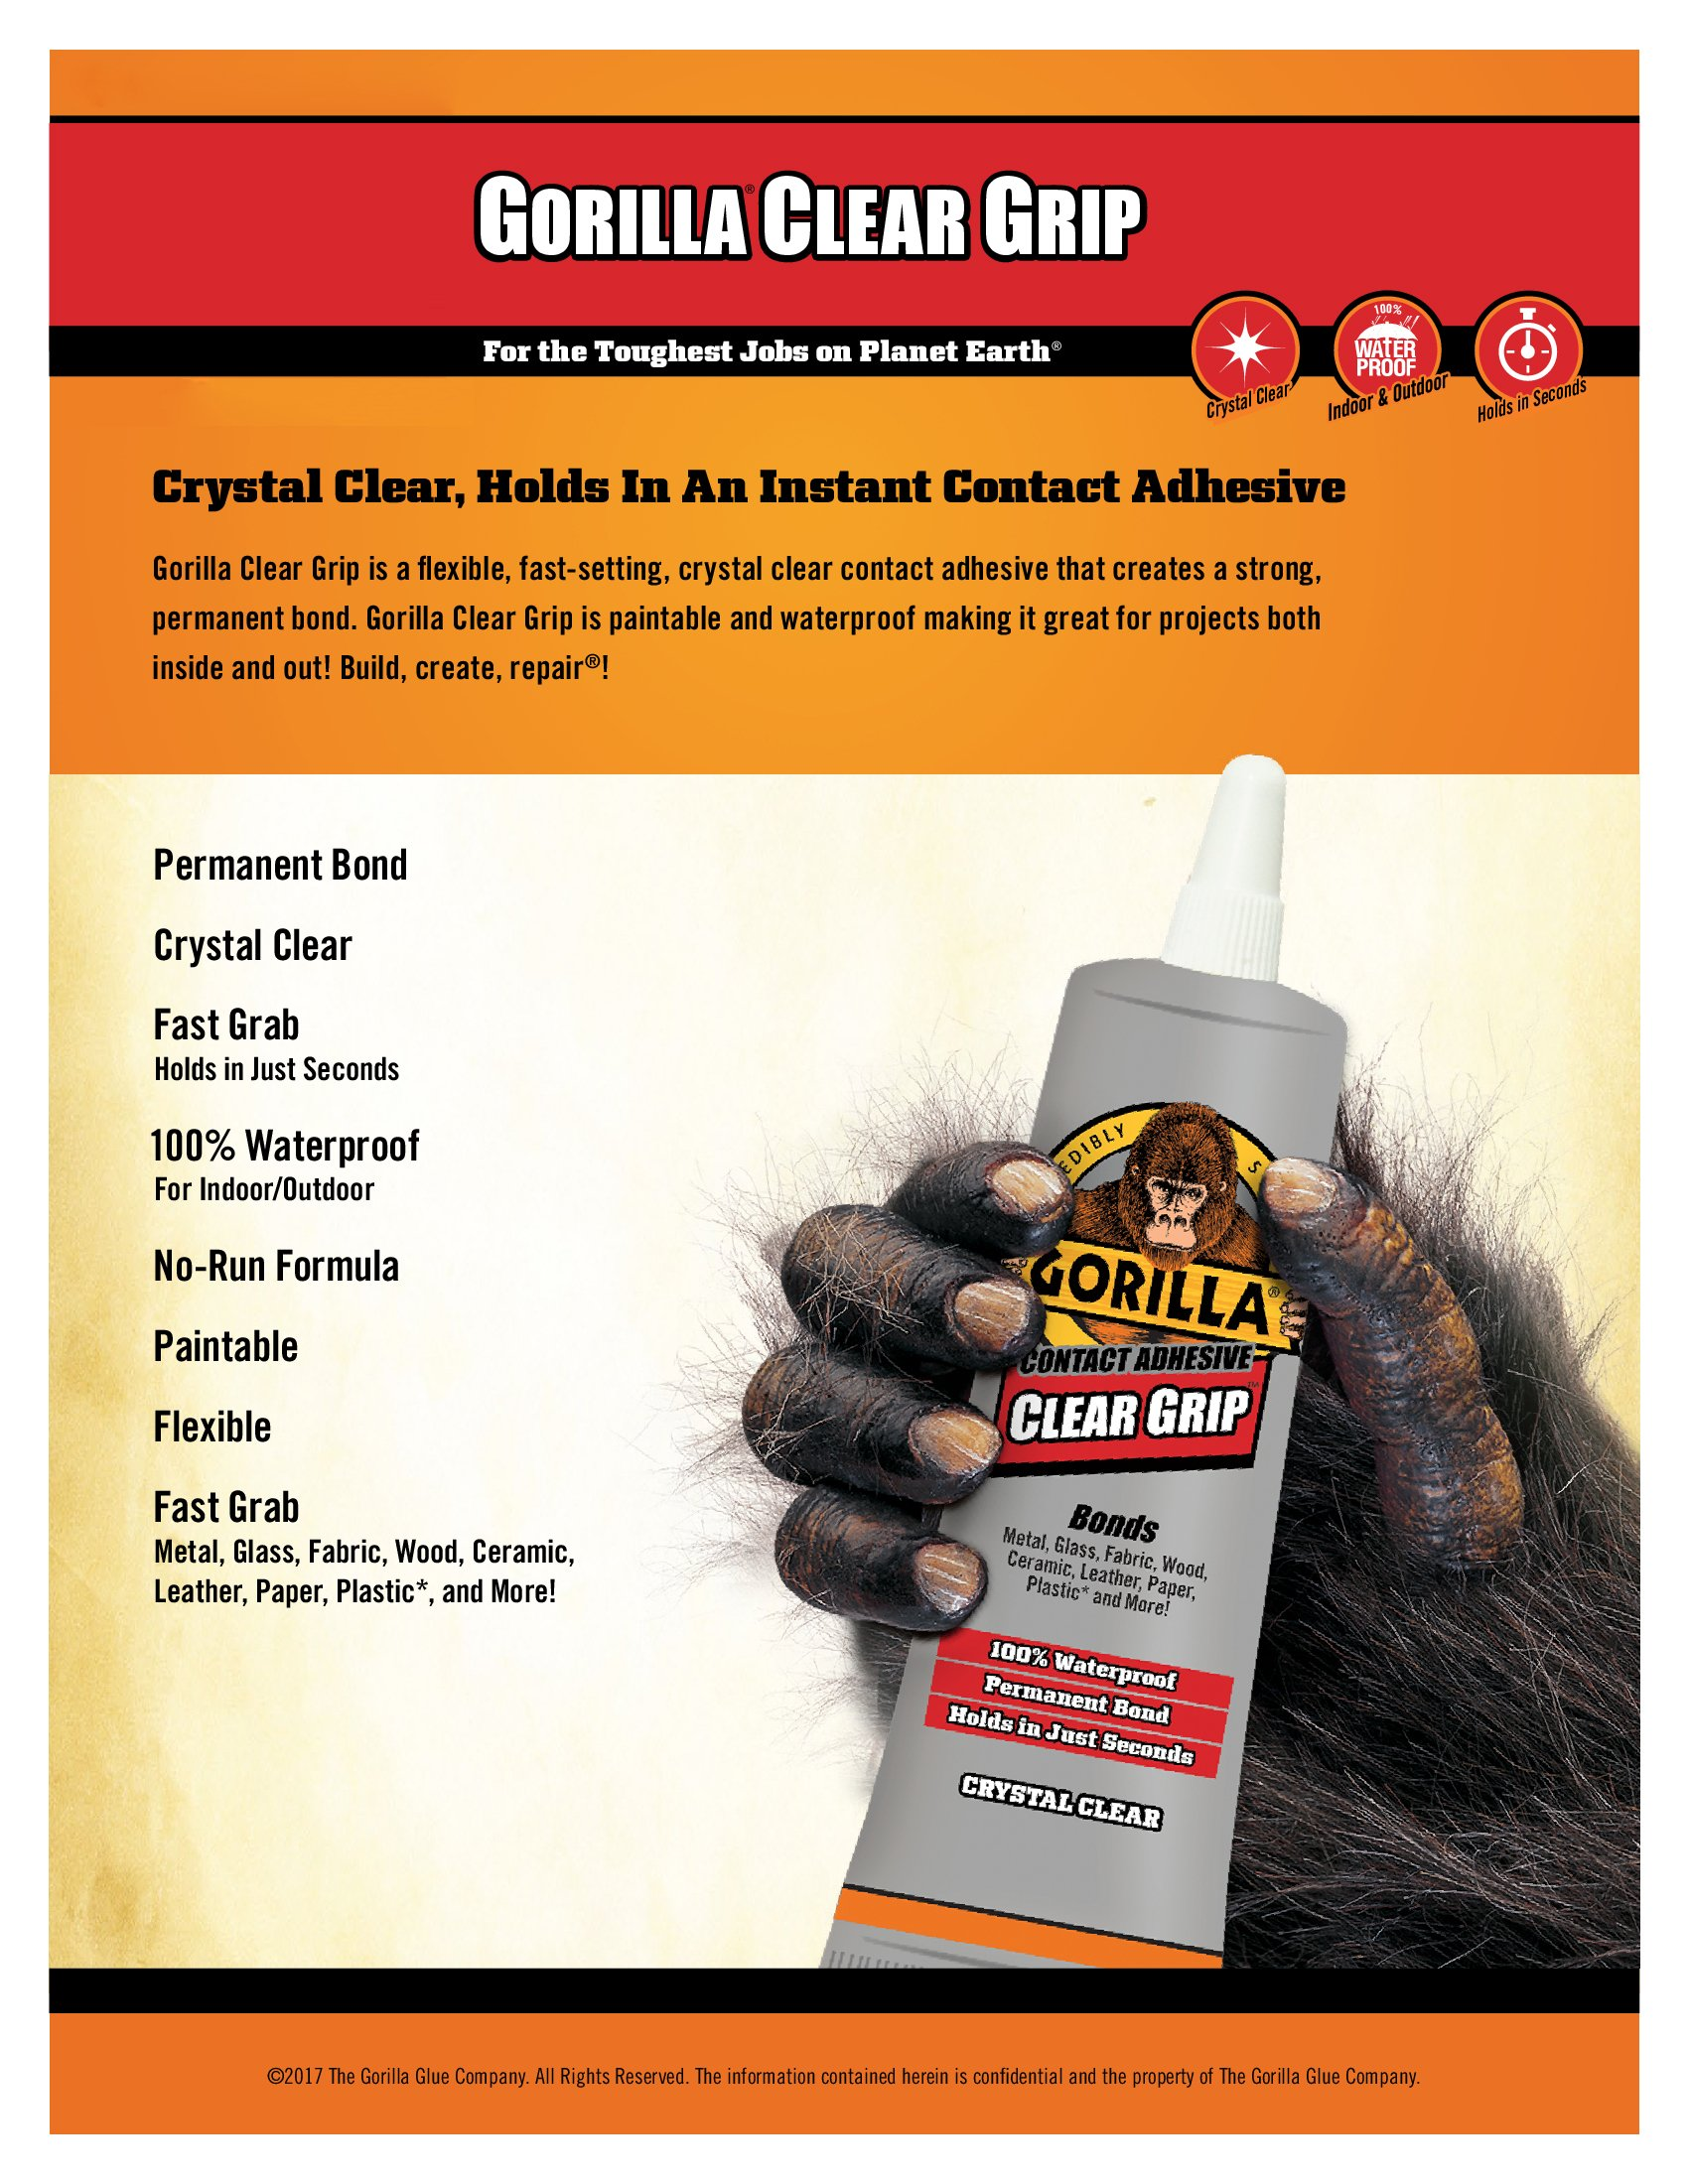 Gorilla Clear Grip Contact Adhesive, Waterproof, 3 ounce, Clear, (Pack of 3) by Gorilla (Image #2)